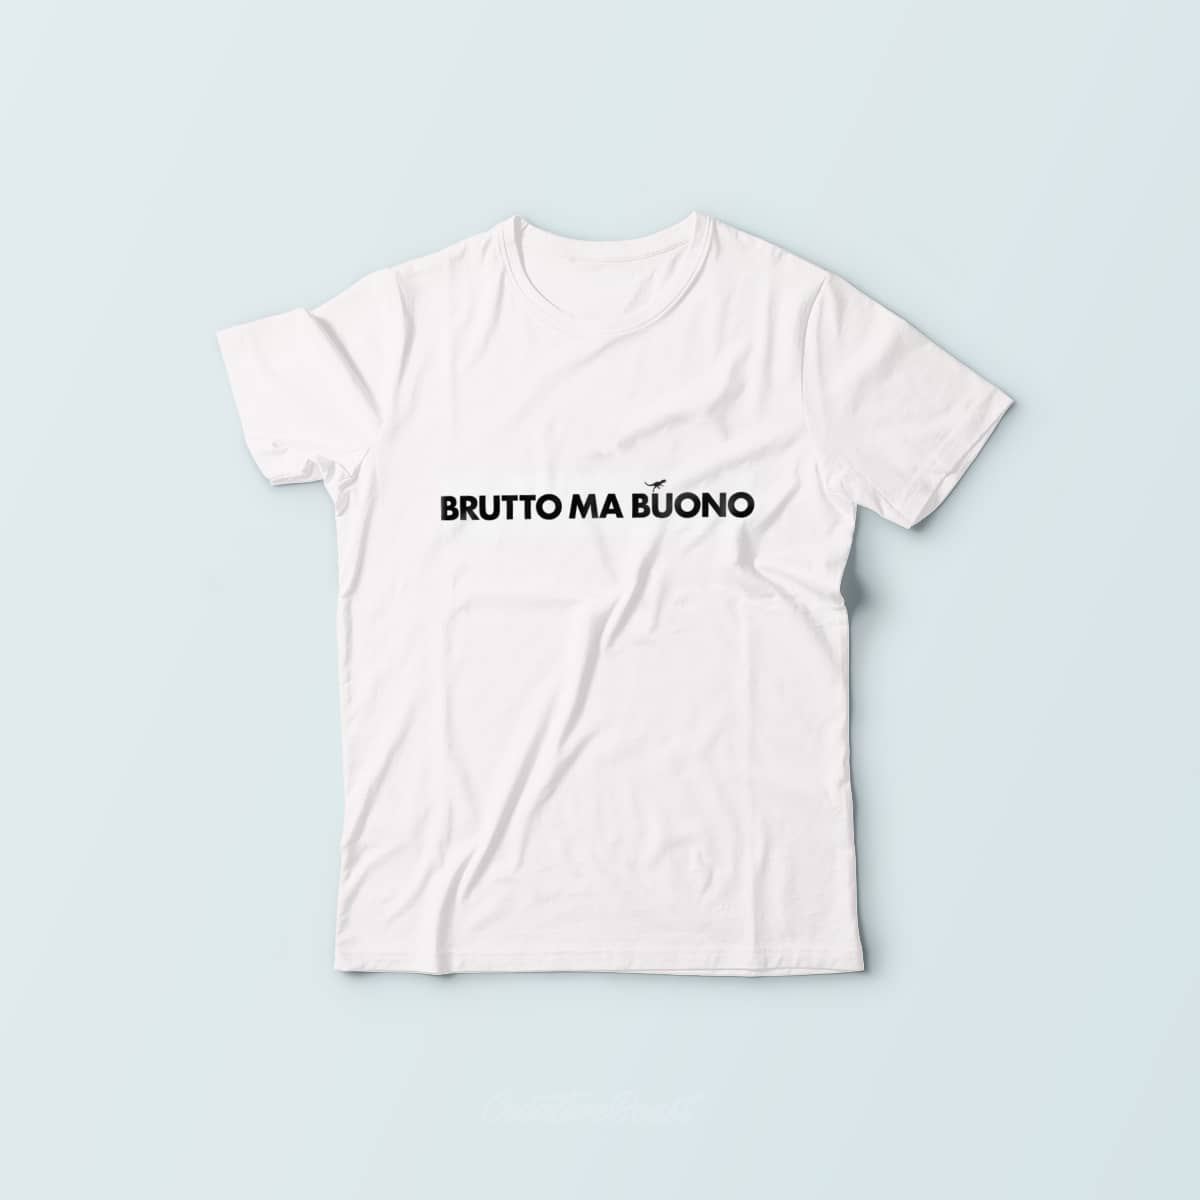 Brutto Ma Buono t-shirt by Creative Beast